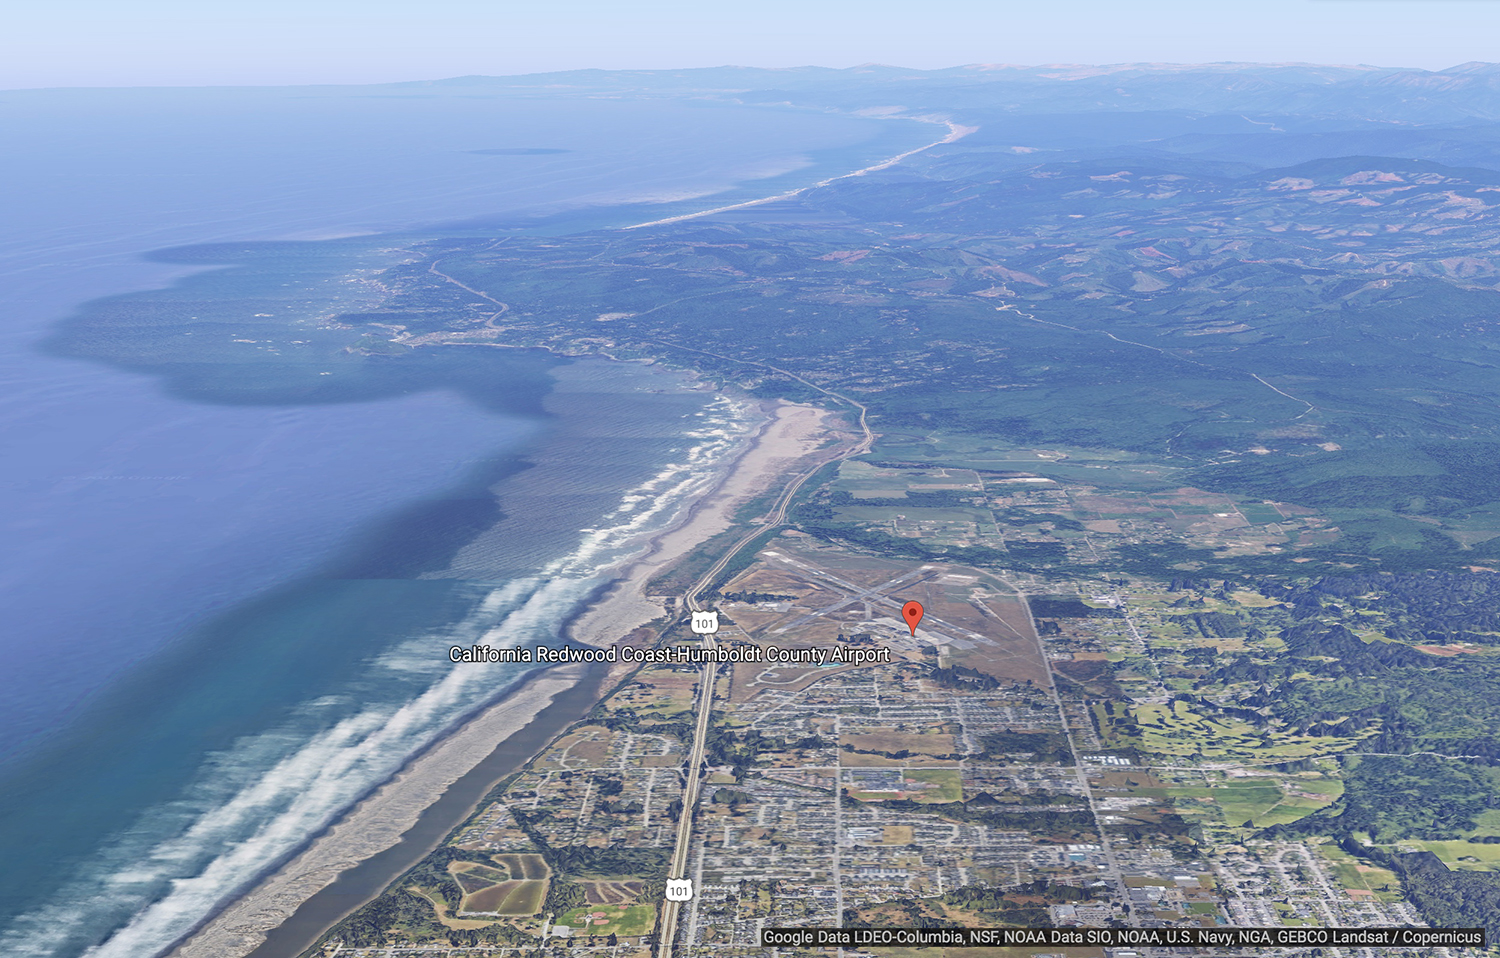 Aerial image of coastline and town of McKinleyville, CA, with airport marked